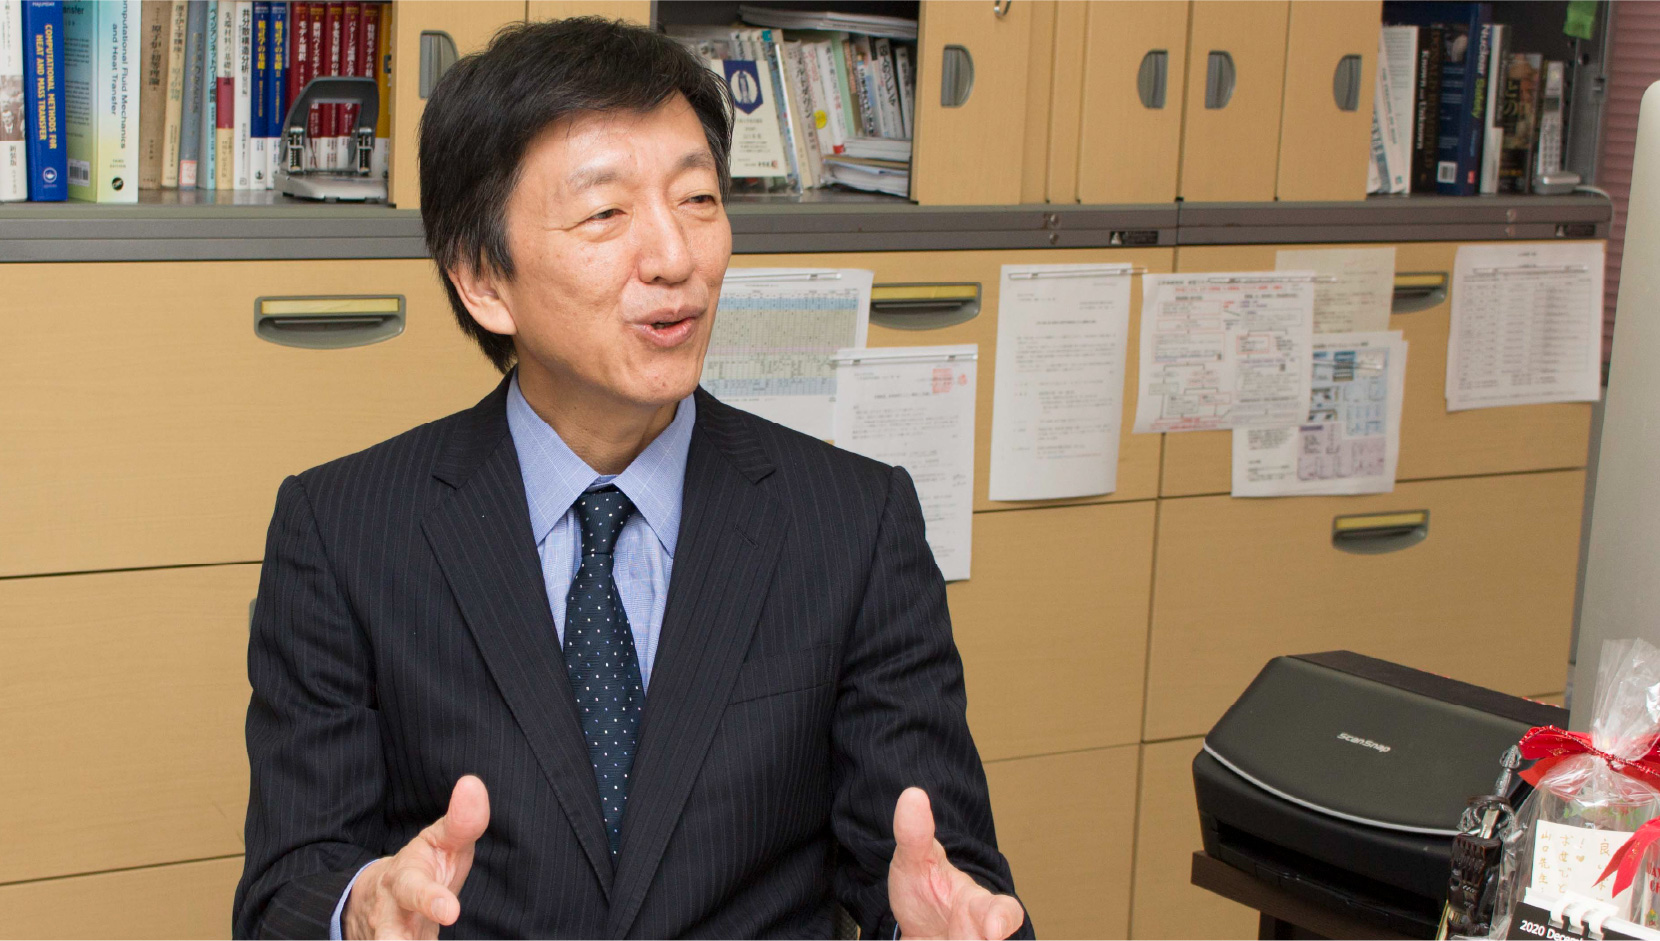 Akira Yamaguchi Professor/Graduate School of Nuclear Engineering and Management, University of Tokyo